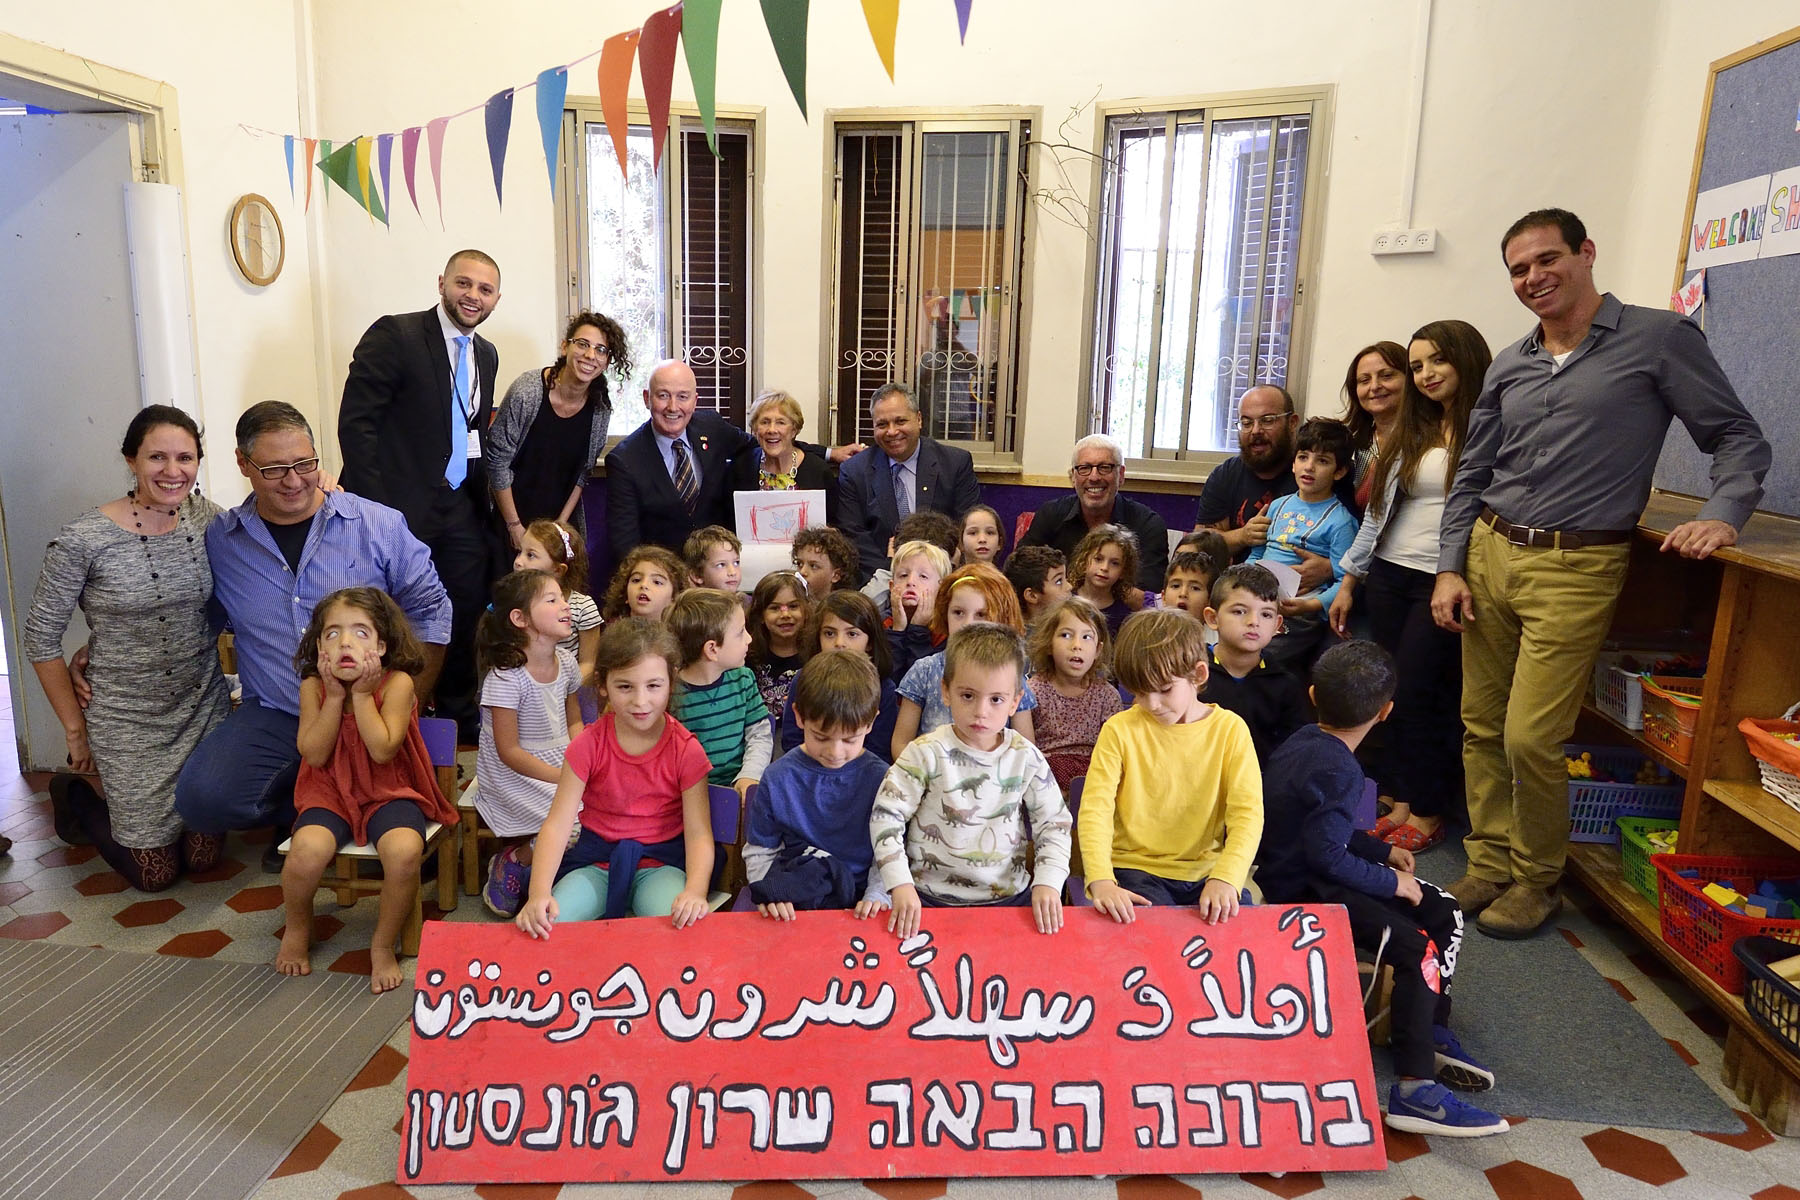 Her Excellency with members of the Canadian delegation, staff from Hand In Hand Haifa Preschool  and children.